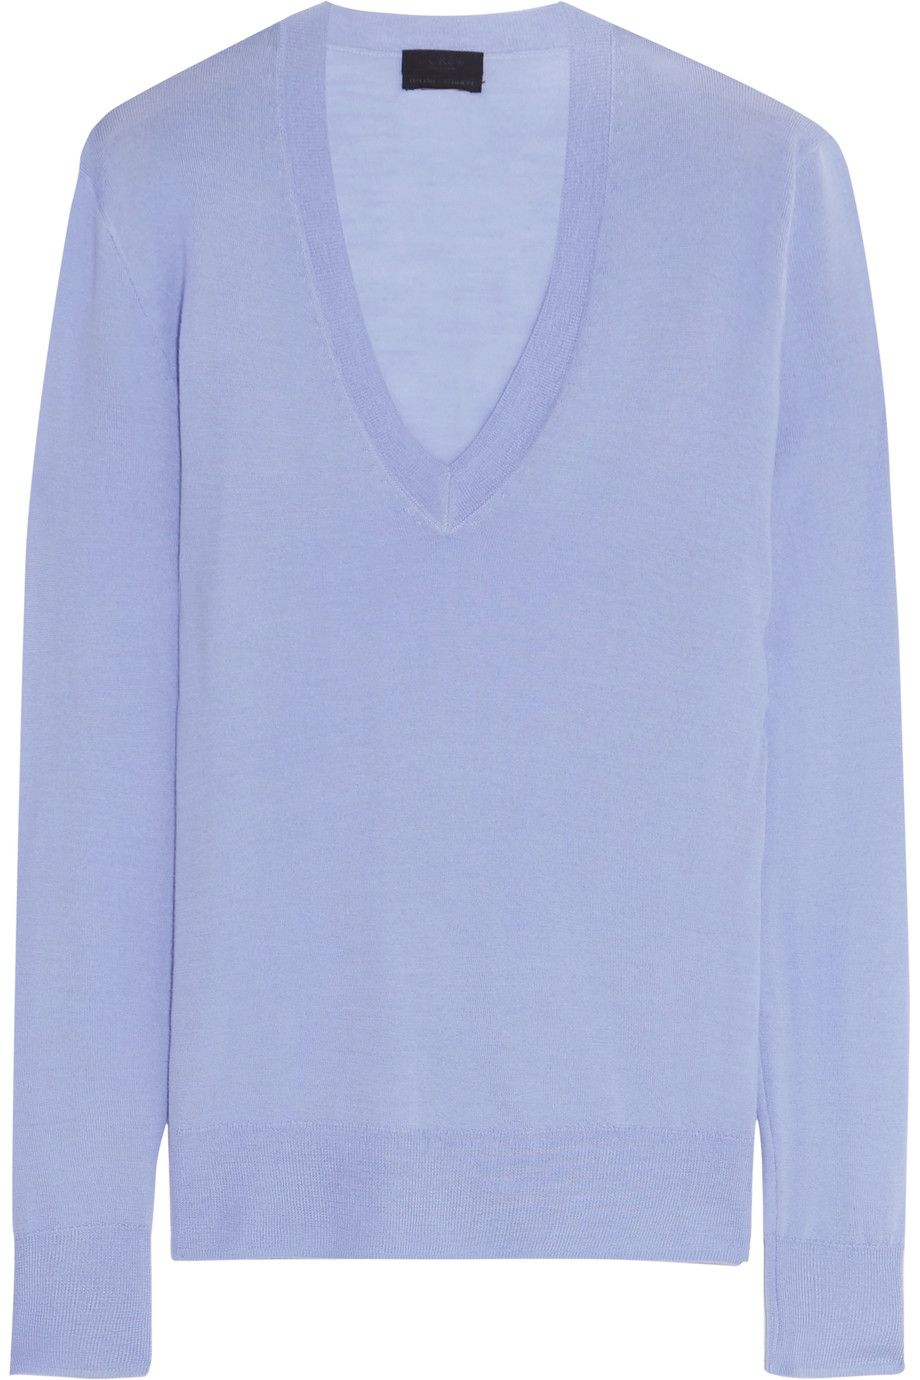 J.CREW Cashmere sweater Lavender cashmere Slips on 100% cashmere ...